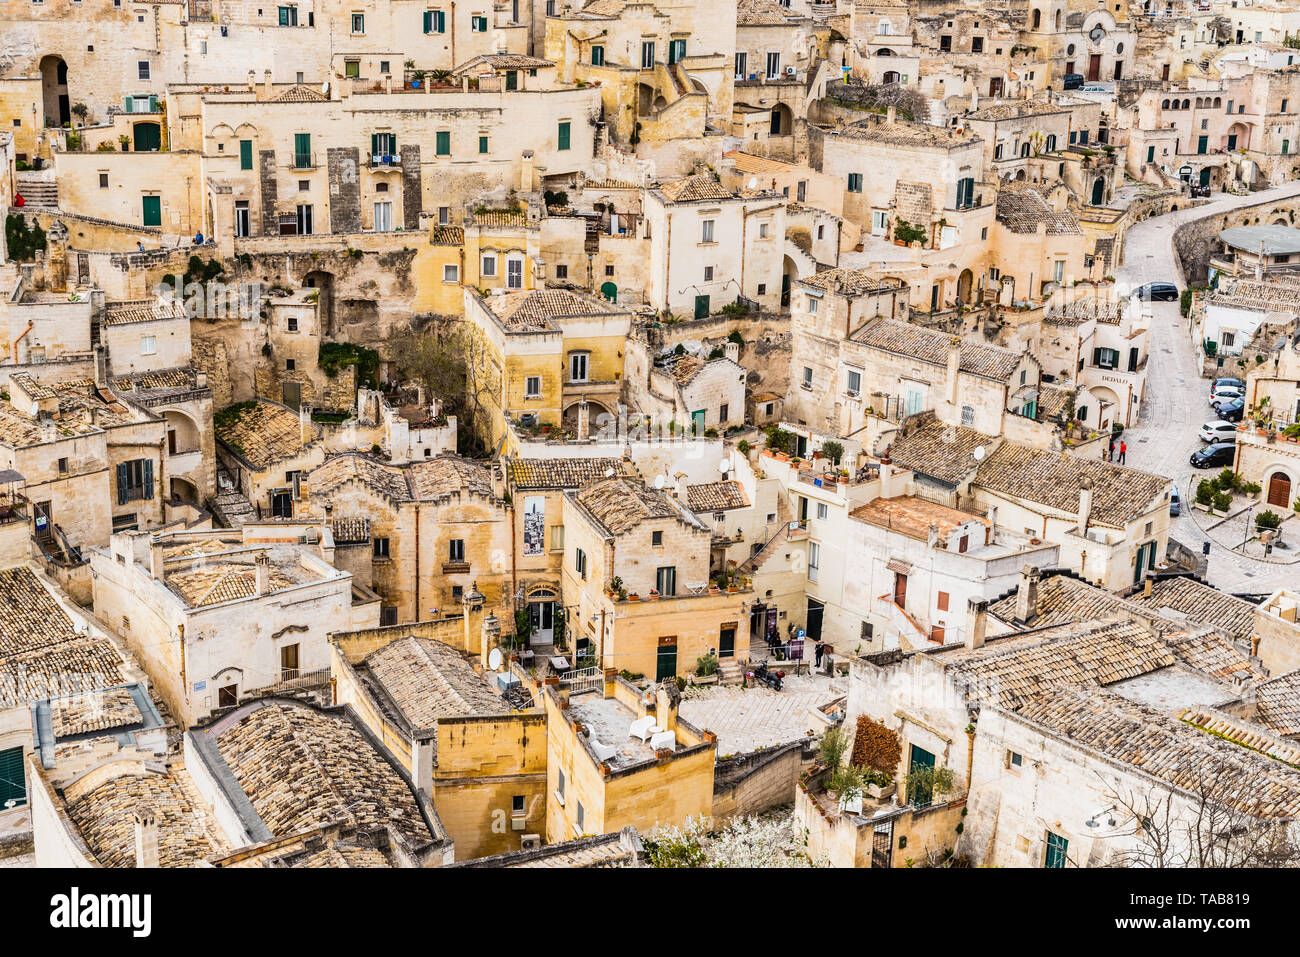 Panoramas of the ancient medieval city of Matera, in Italy. - Stock Image